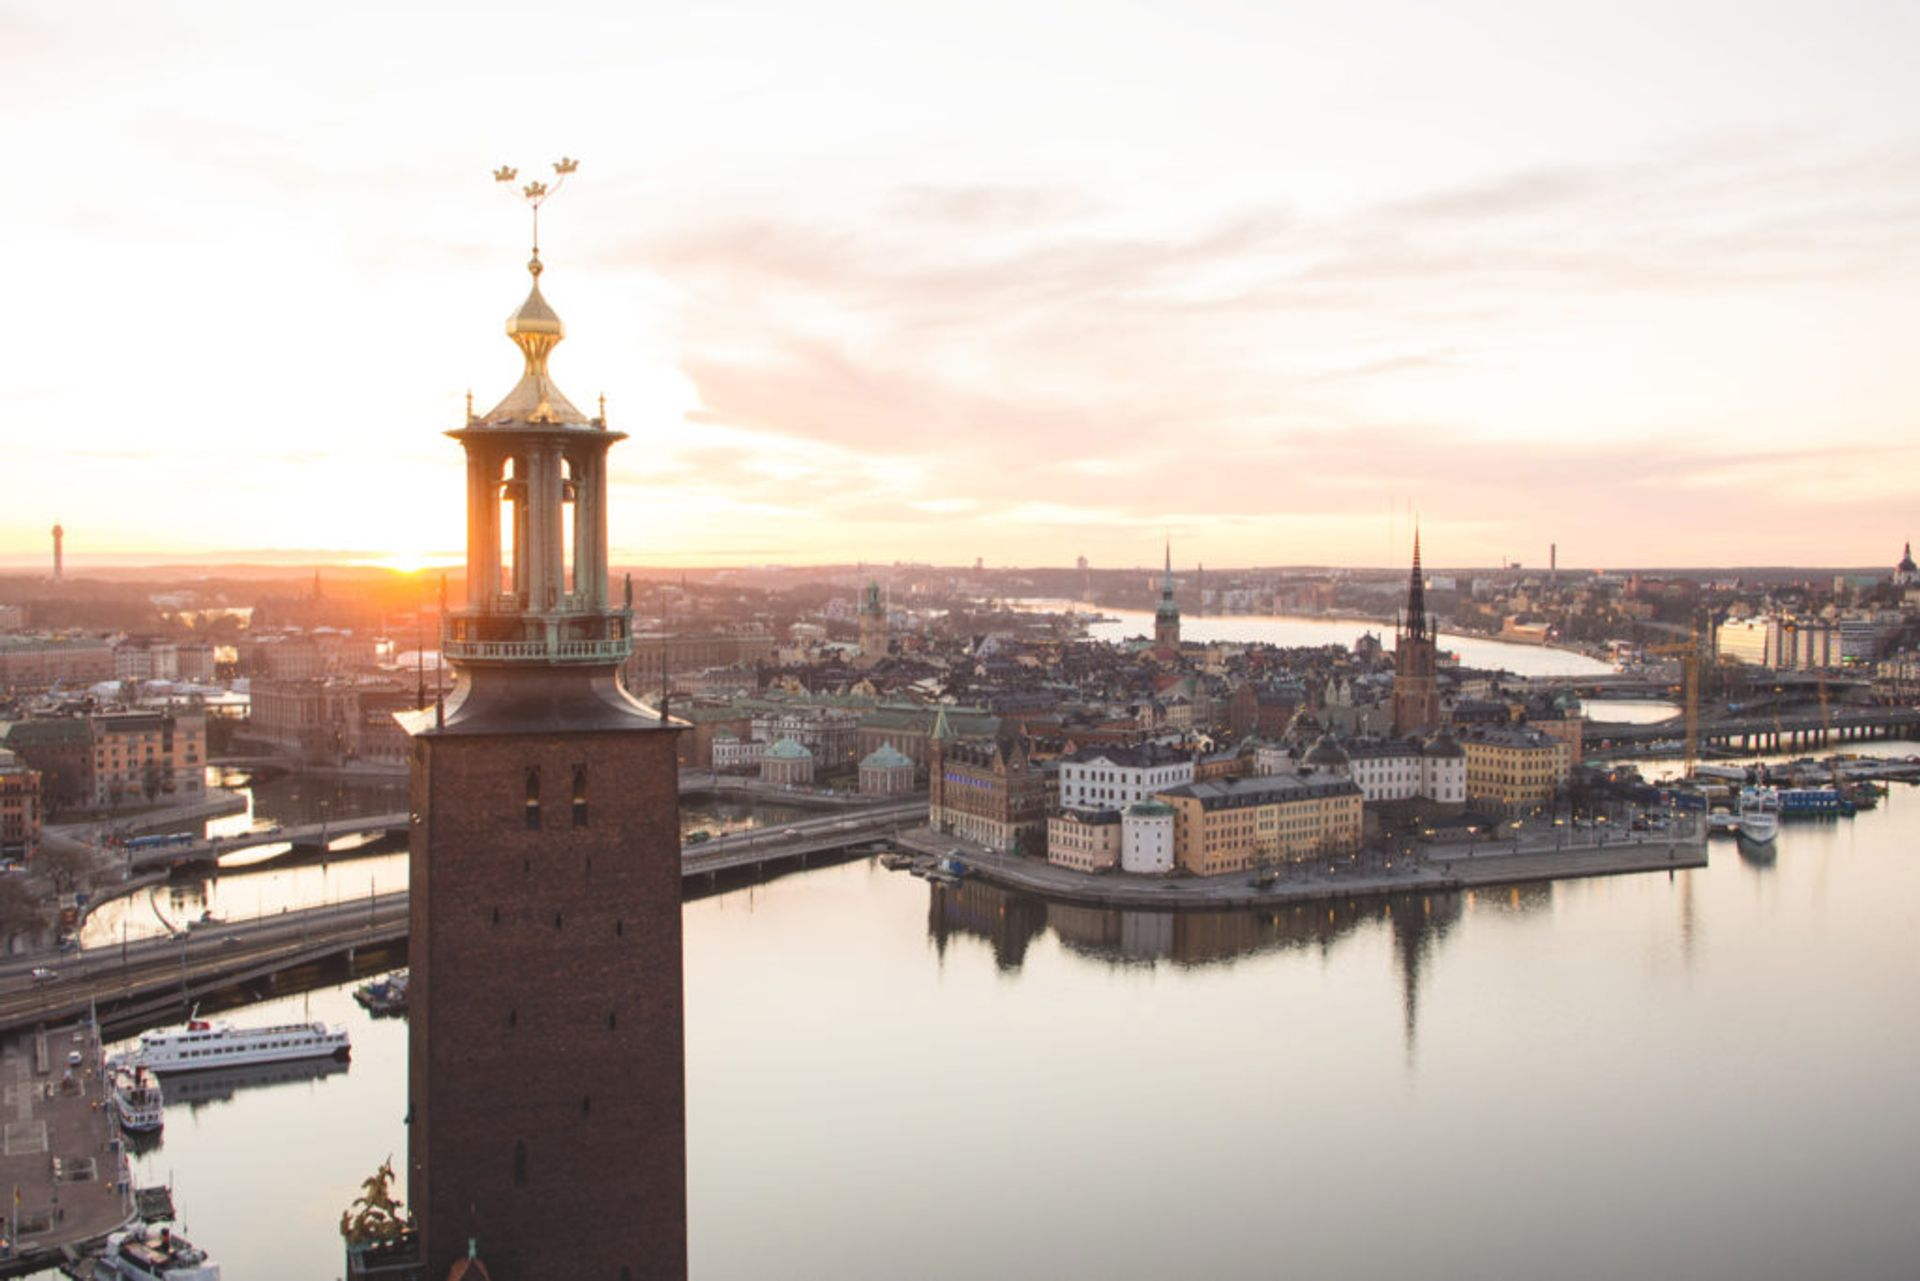 Stockholm's Old Town from above.